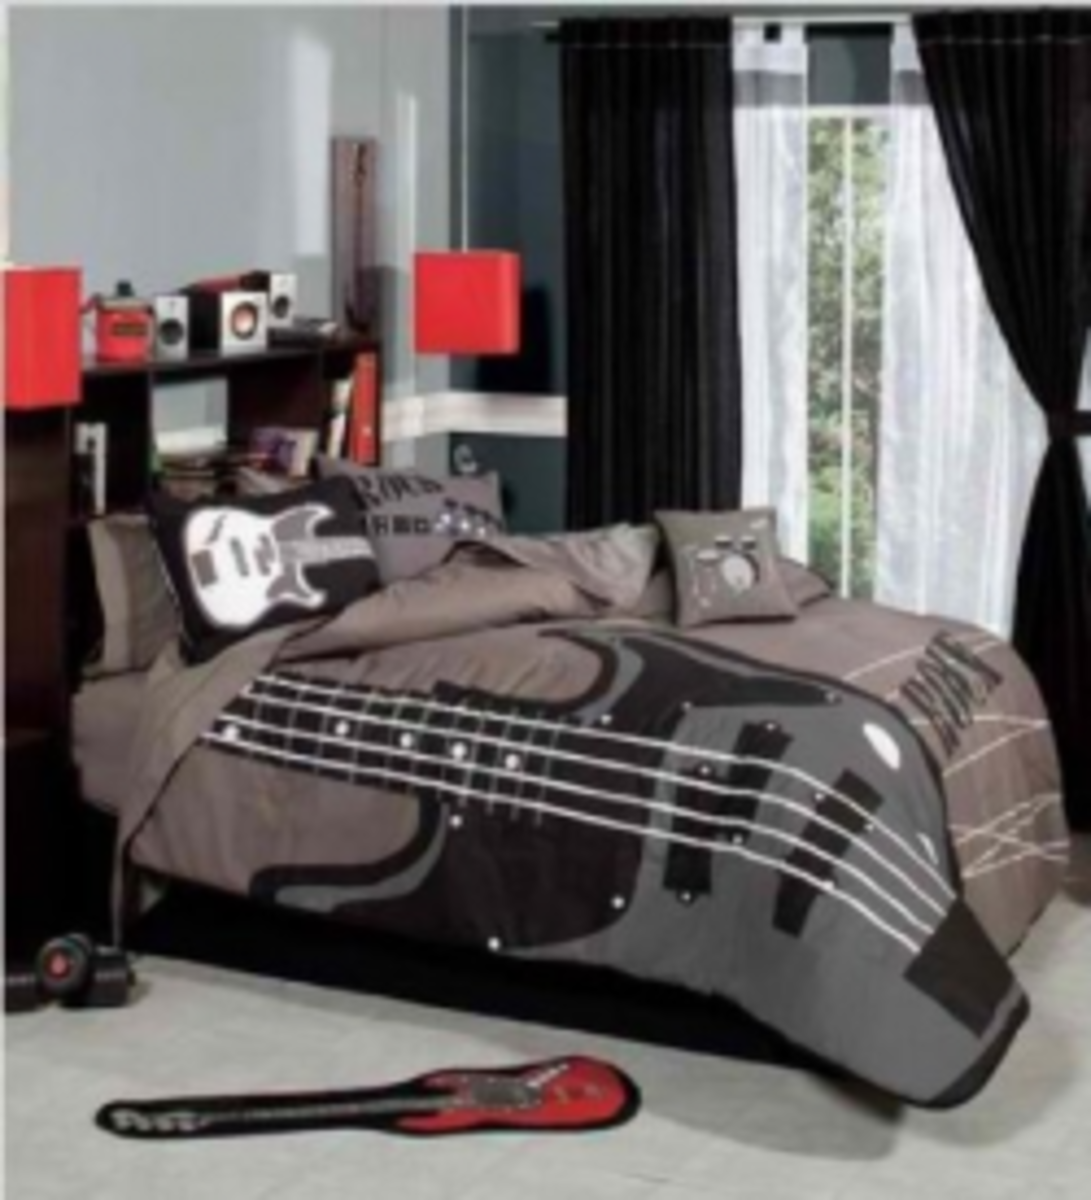 Decoration Theme Guitare : Rock n roll bedroom décor ideas hubpages